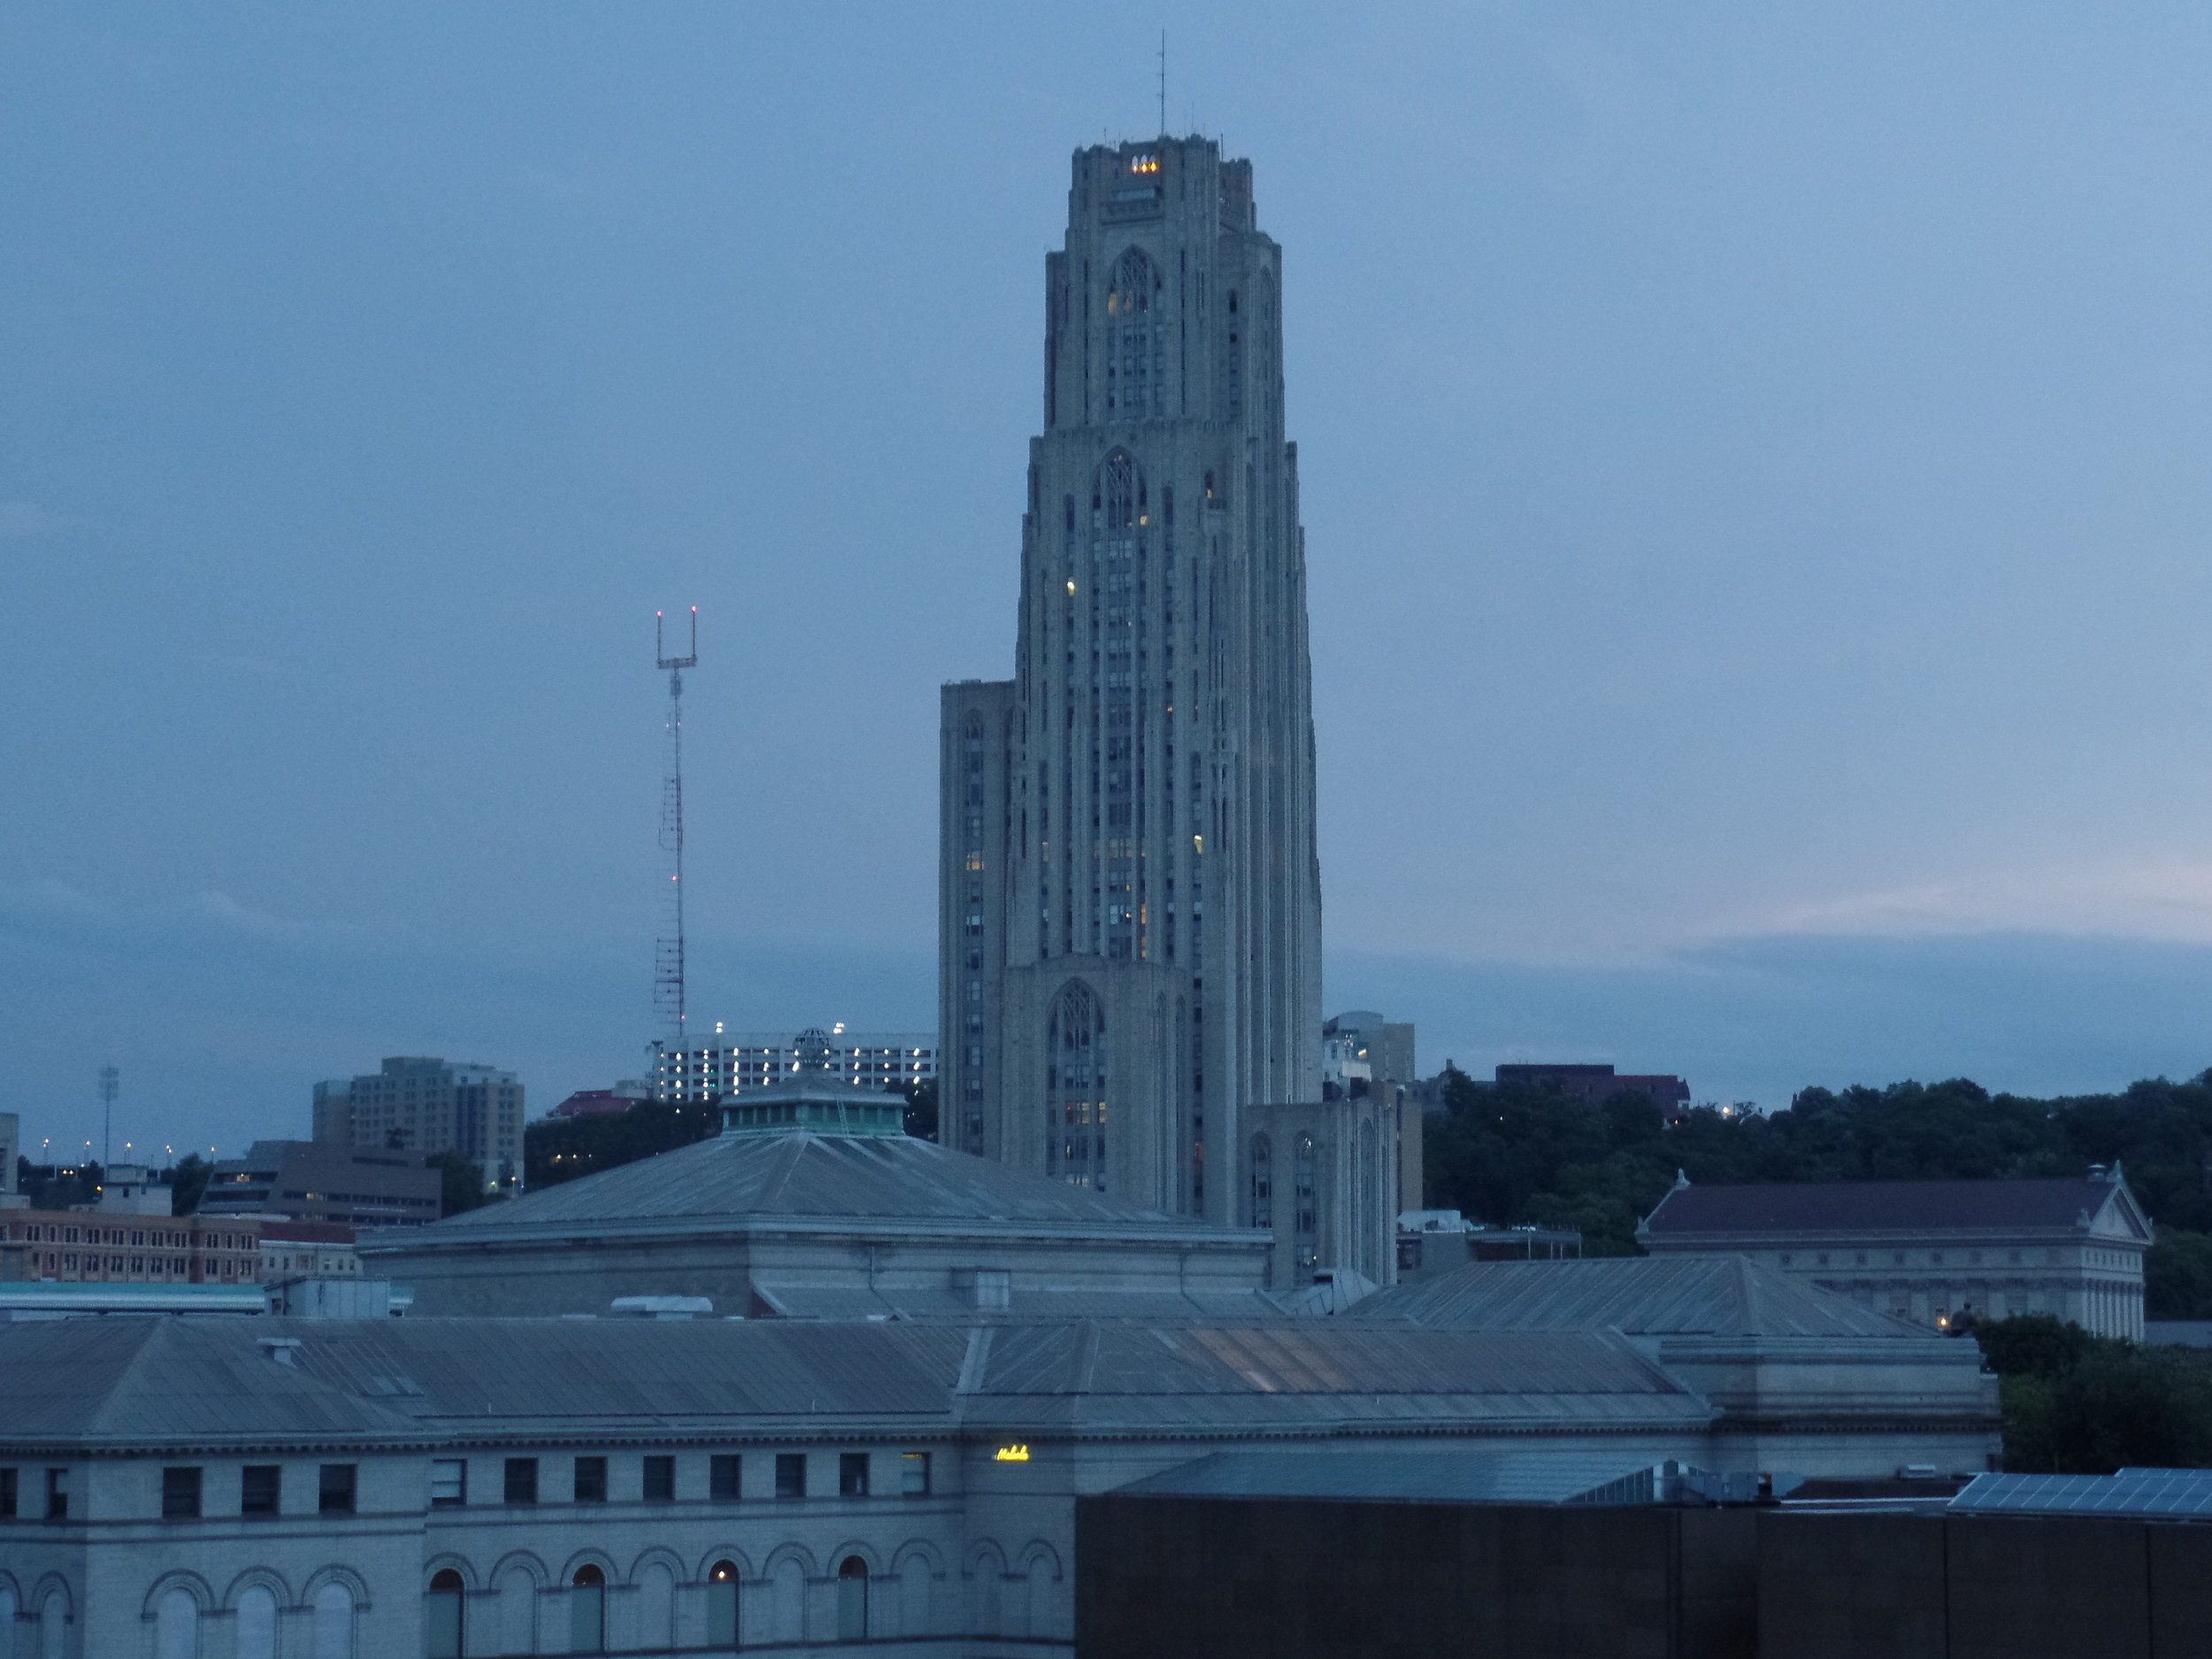 Still, Behold: The Cathedral of Learning